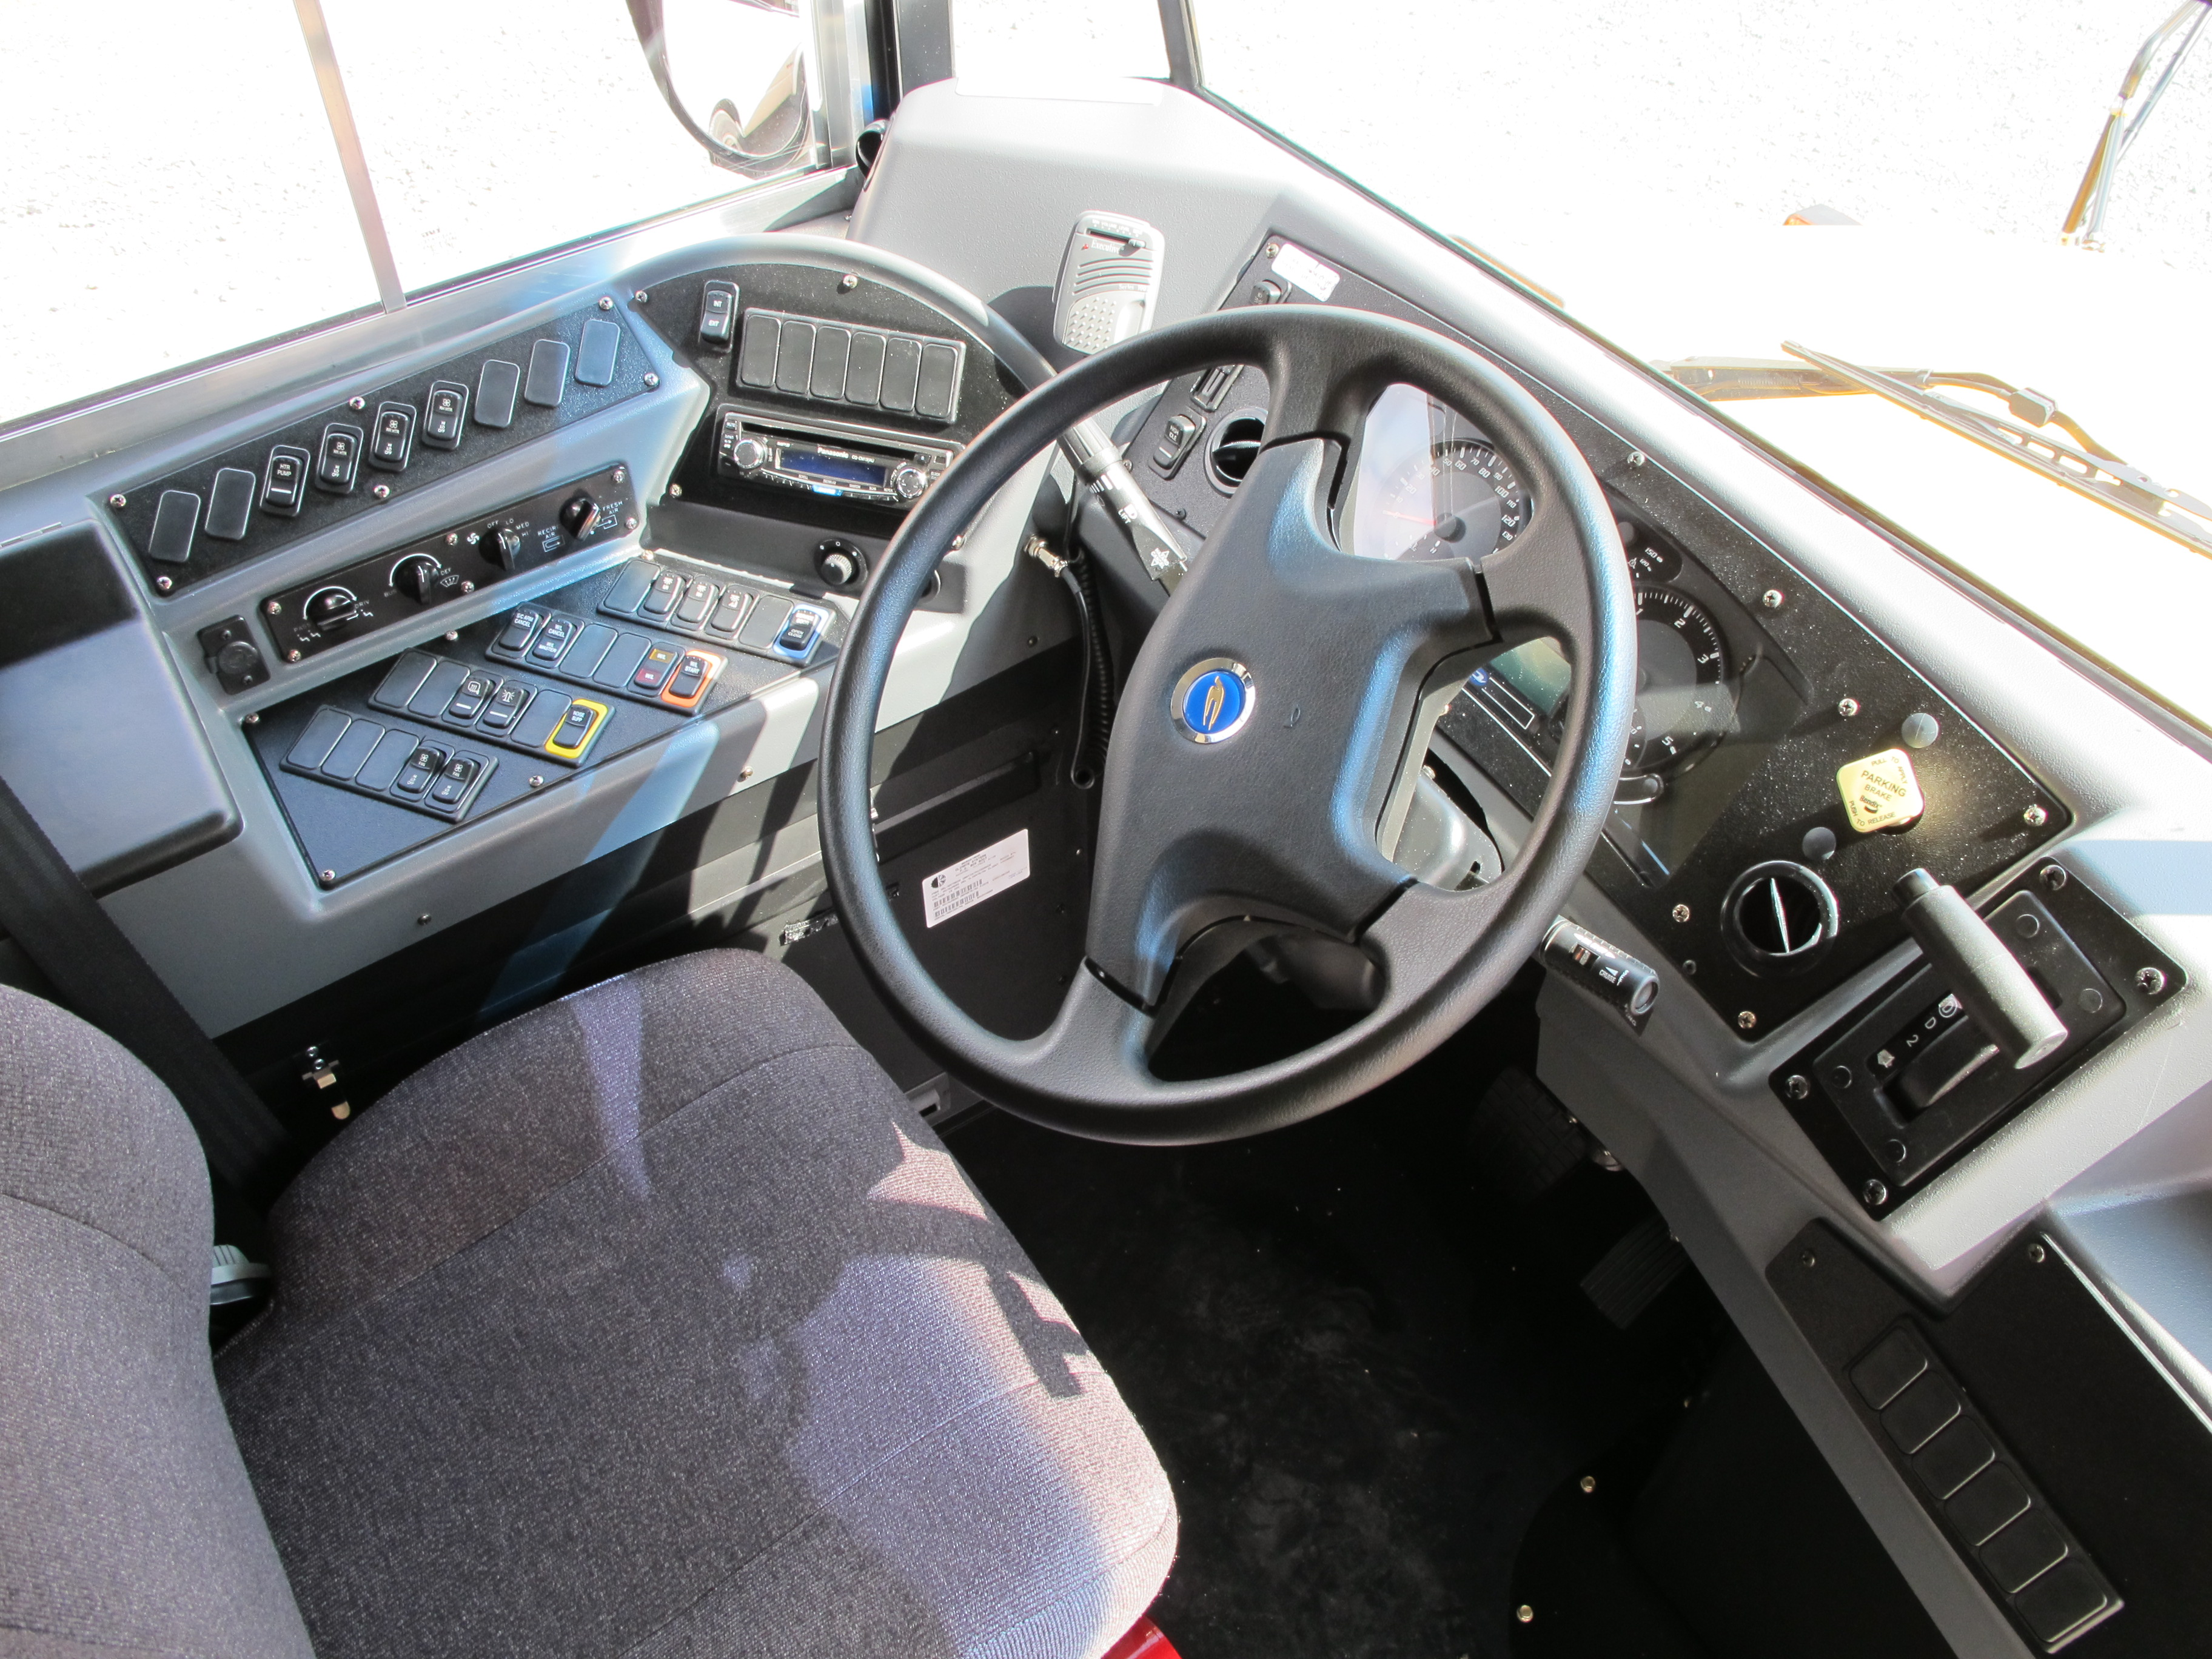 2011_Blue_Bird_Vision_dashboard